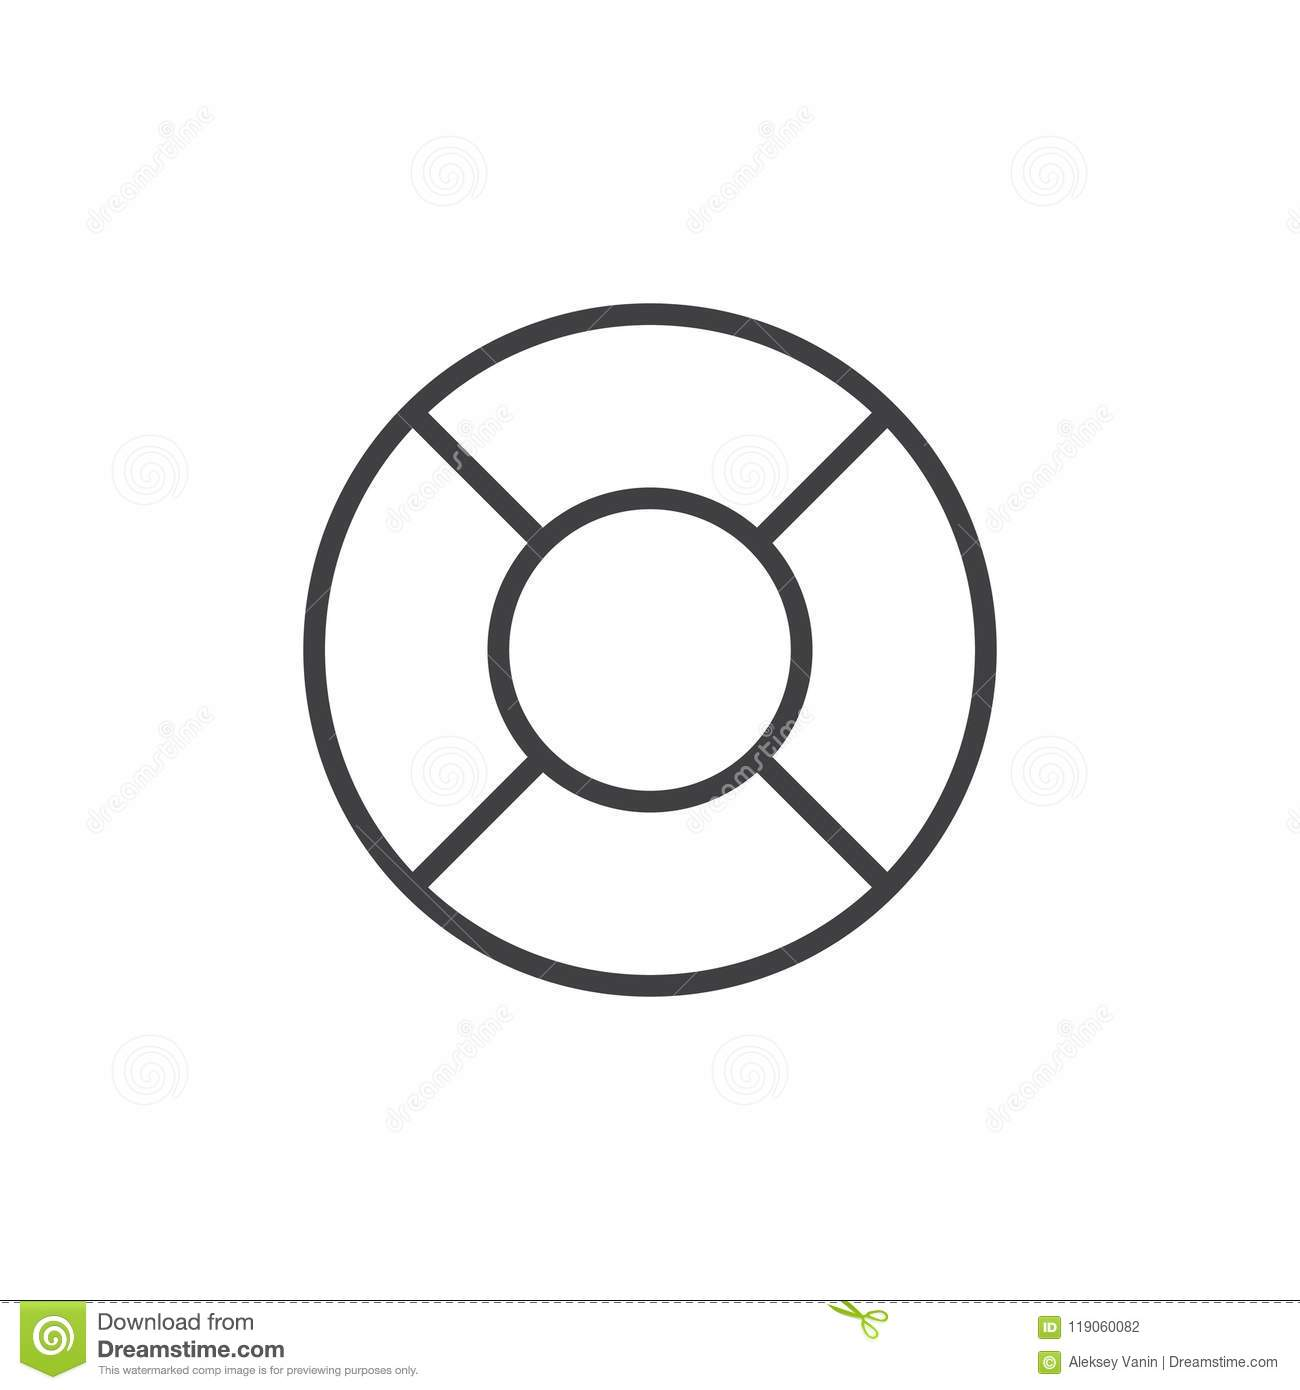 Lifebuoy Outline Icon Stock Vector Illustration Of Line